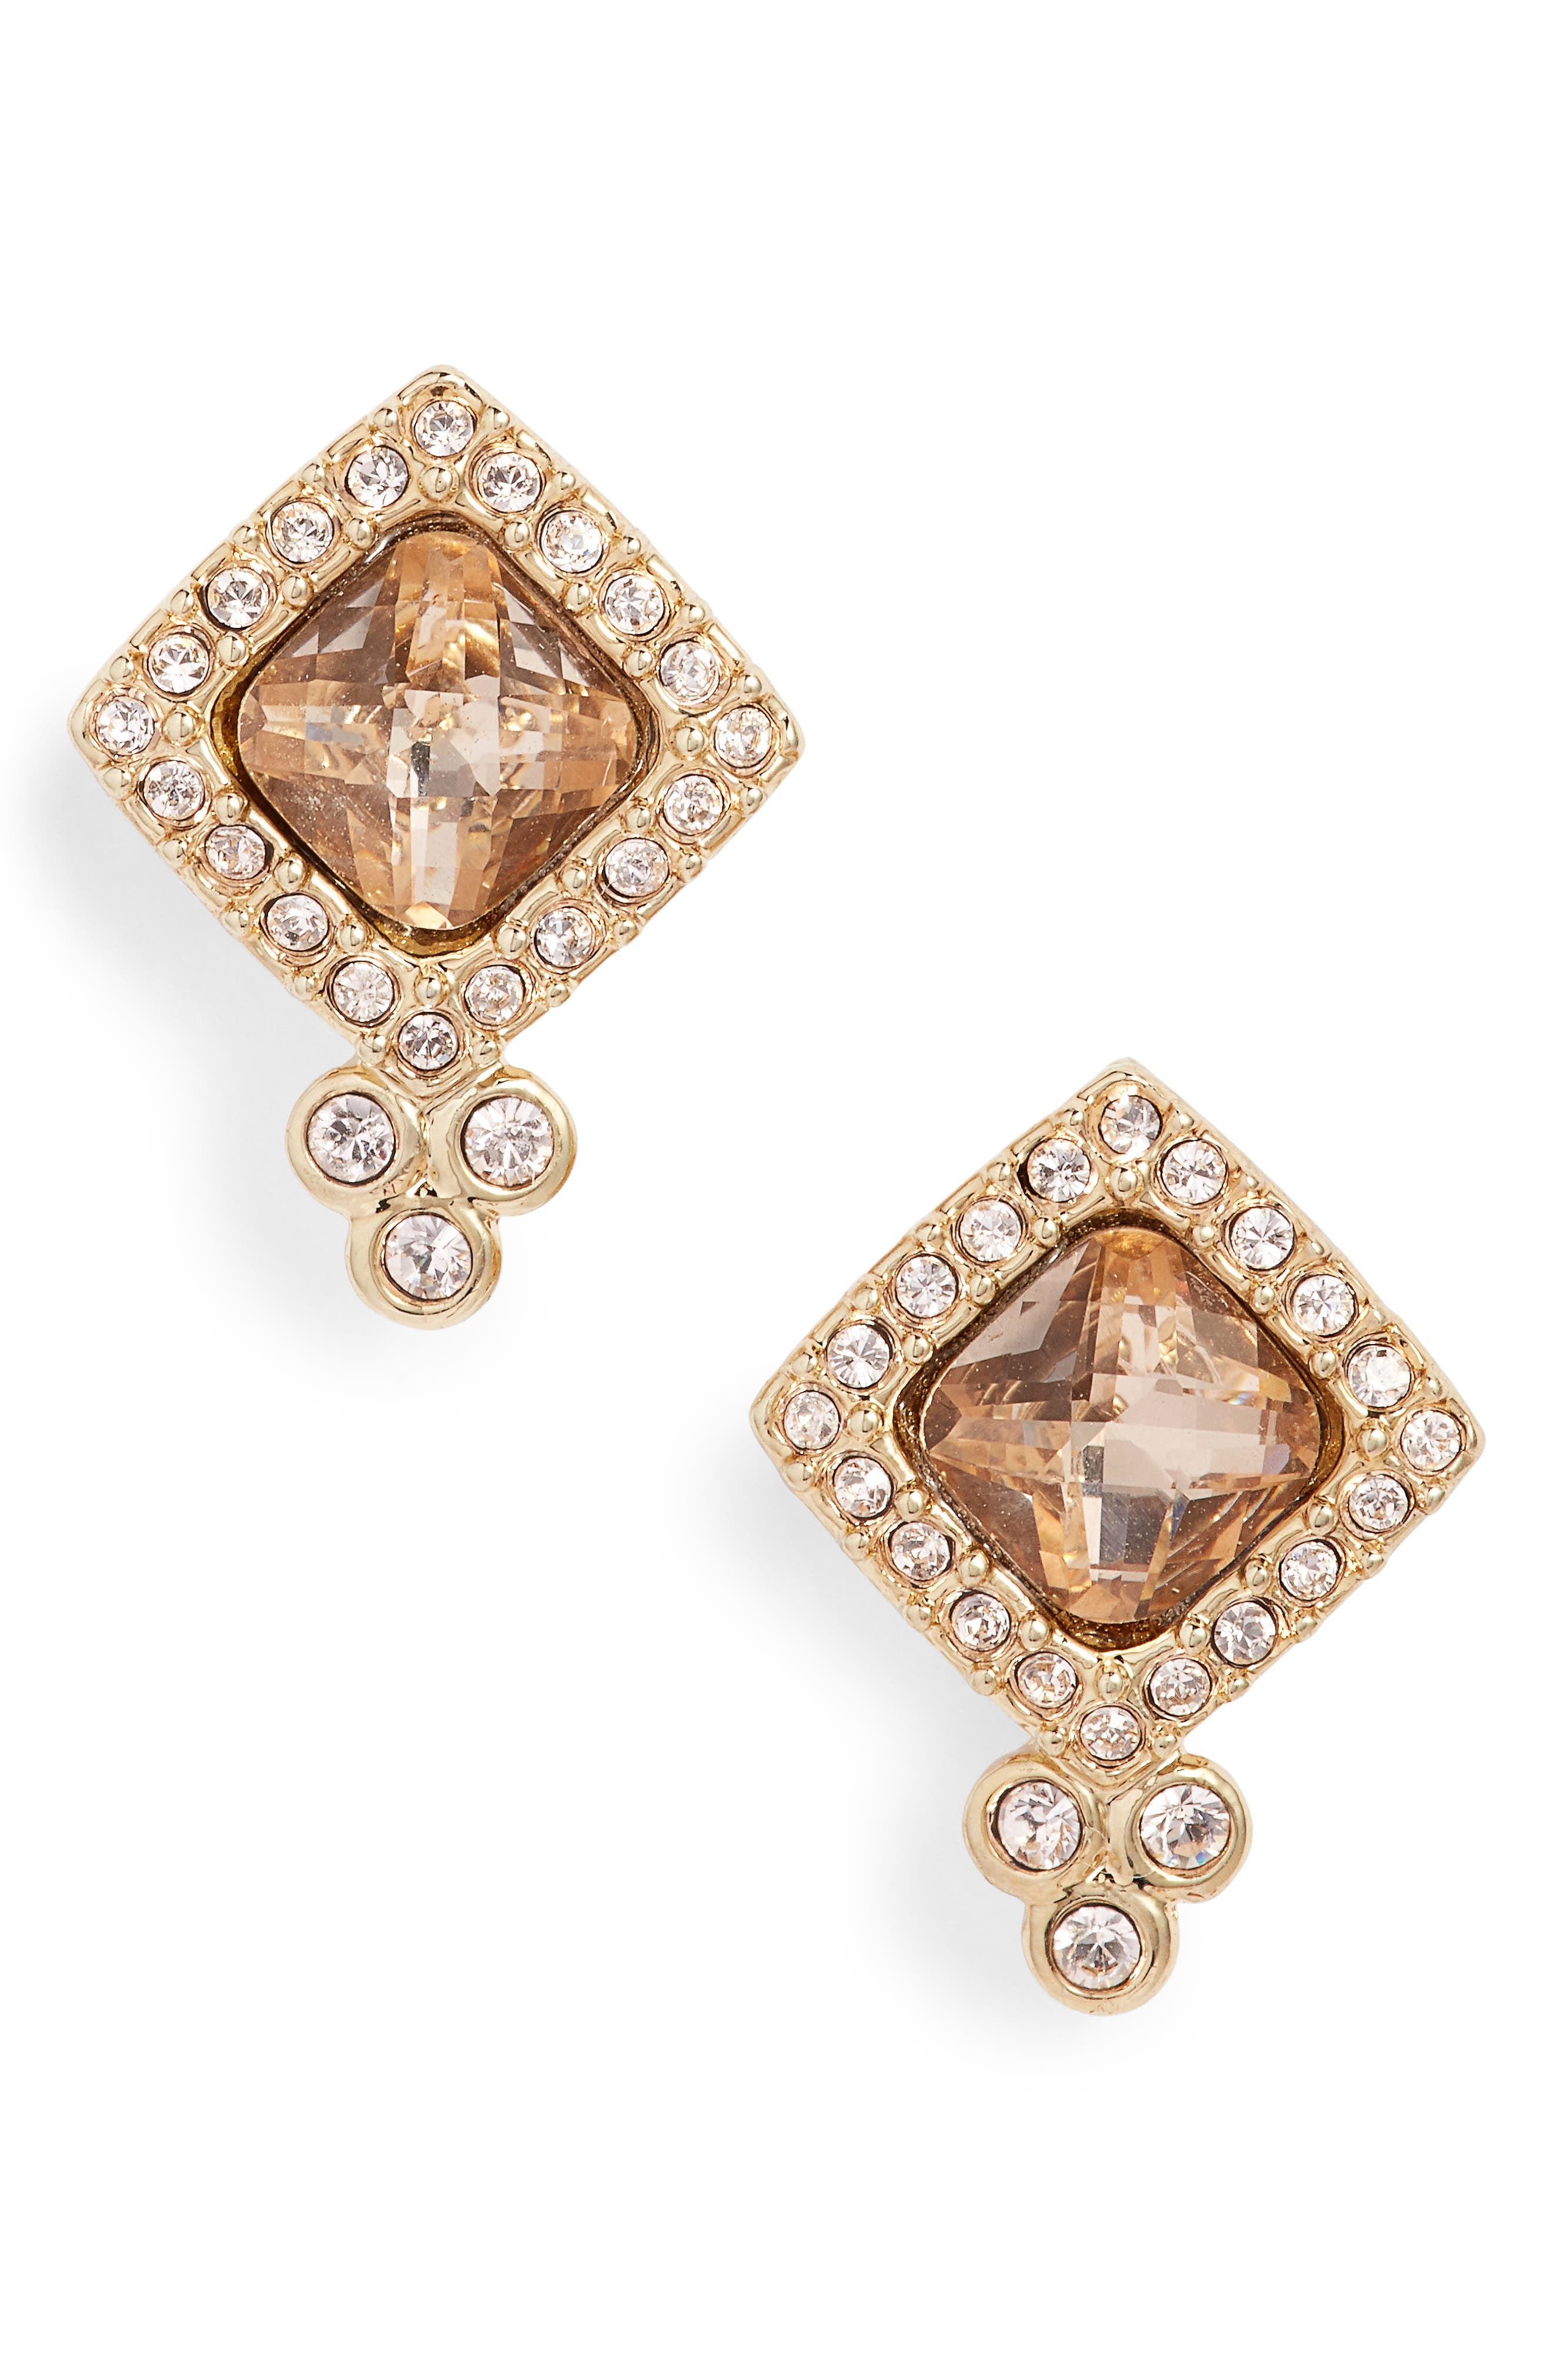 Crystal Stud Earrings,                         Main,                         color, Champagne/ Gold